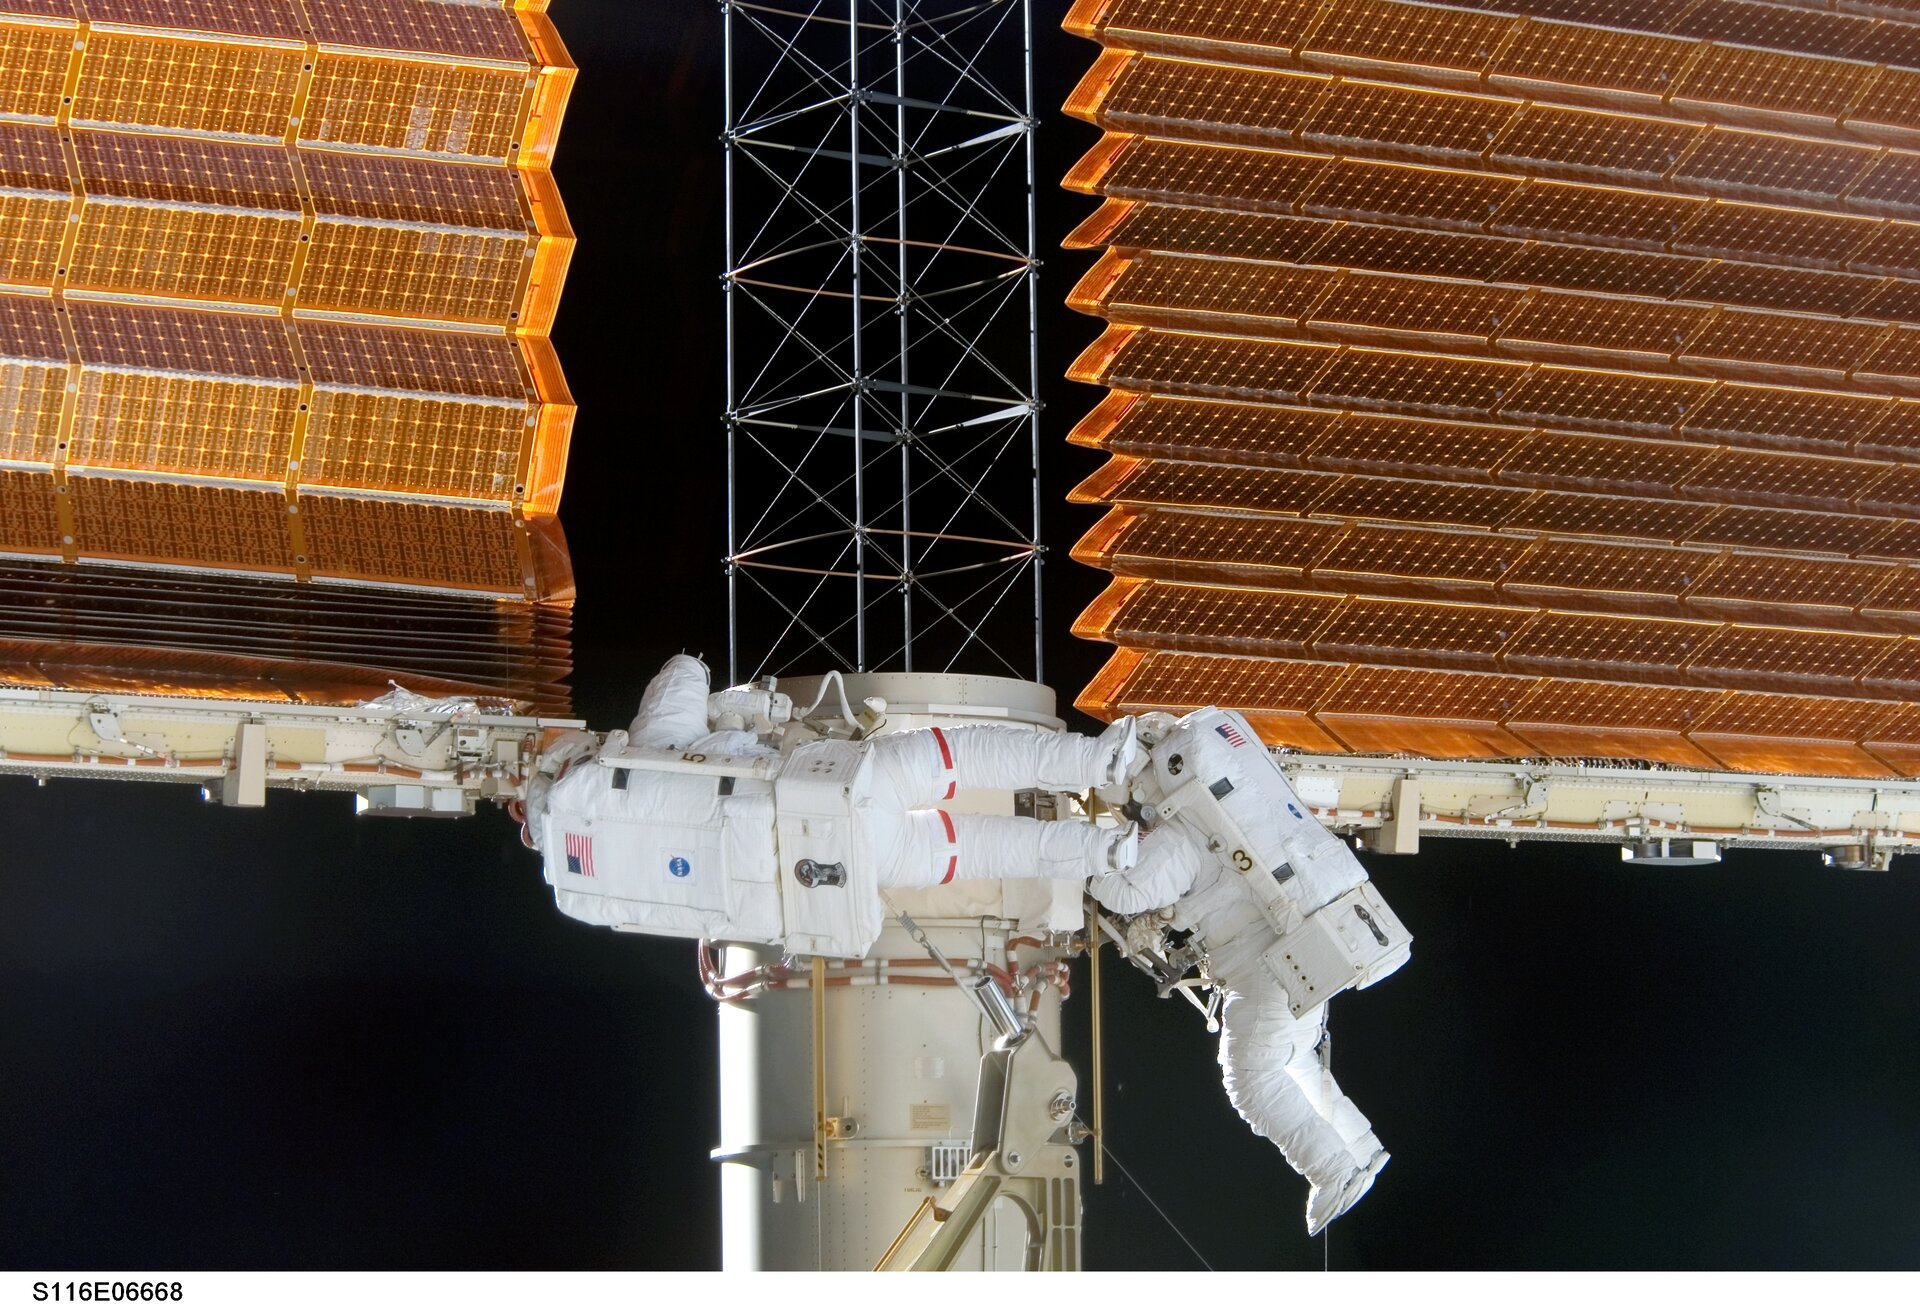 Williams and Curbeam shake the P6 solar array to aid retraction